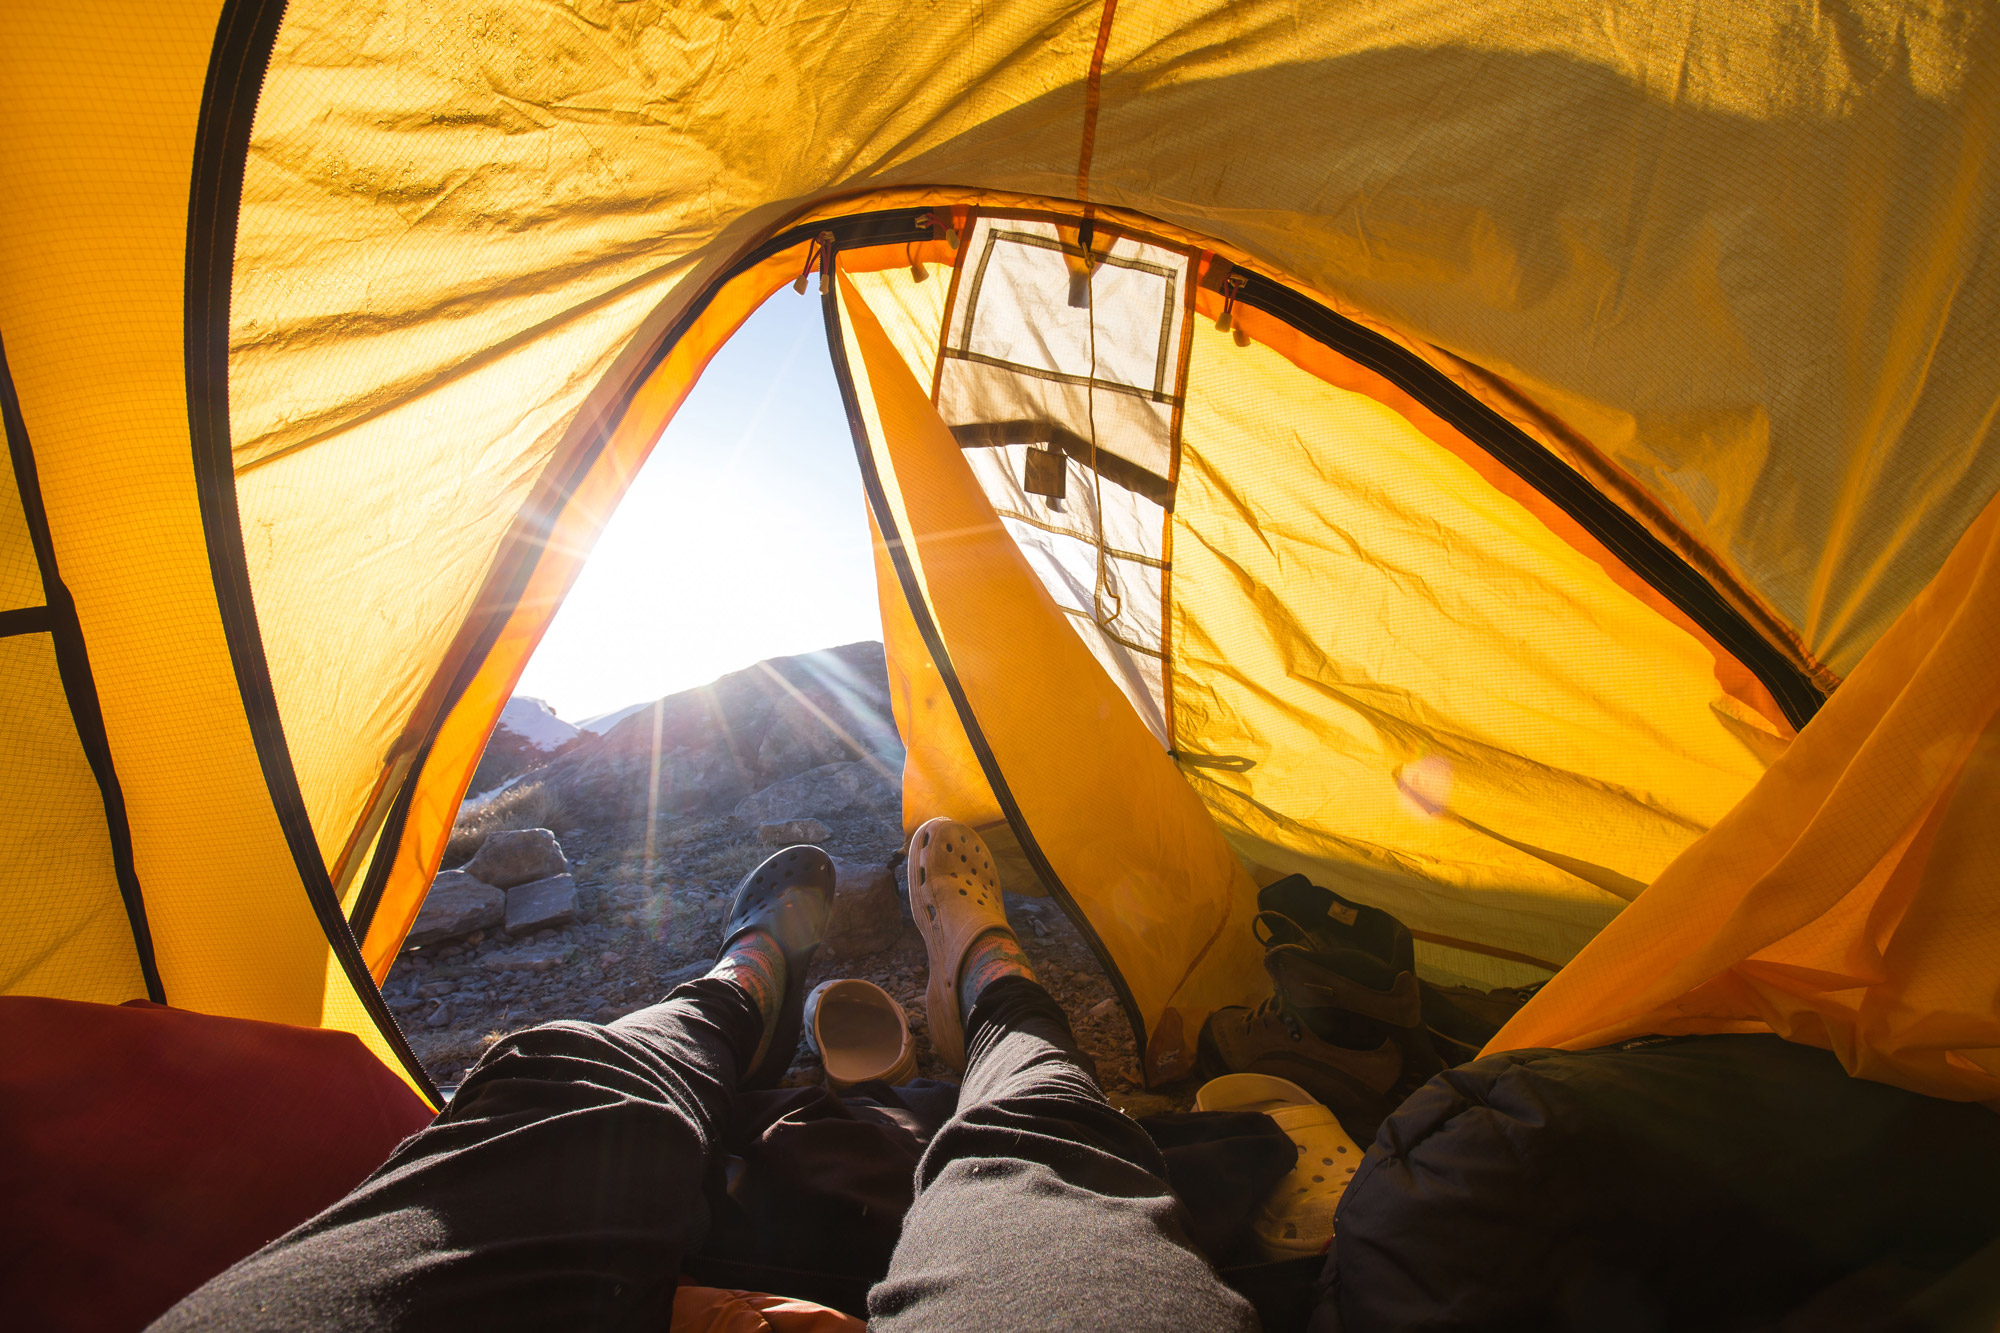 http://www.thethingaboutgreece.com/wp-content/uploads/2015/12/camping-Mt-Olympus.jpg